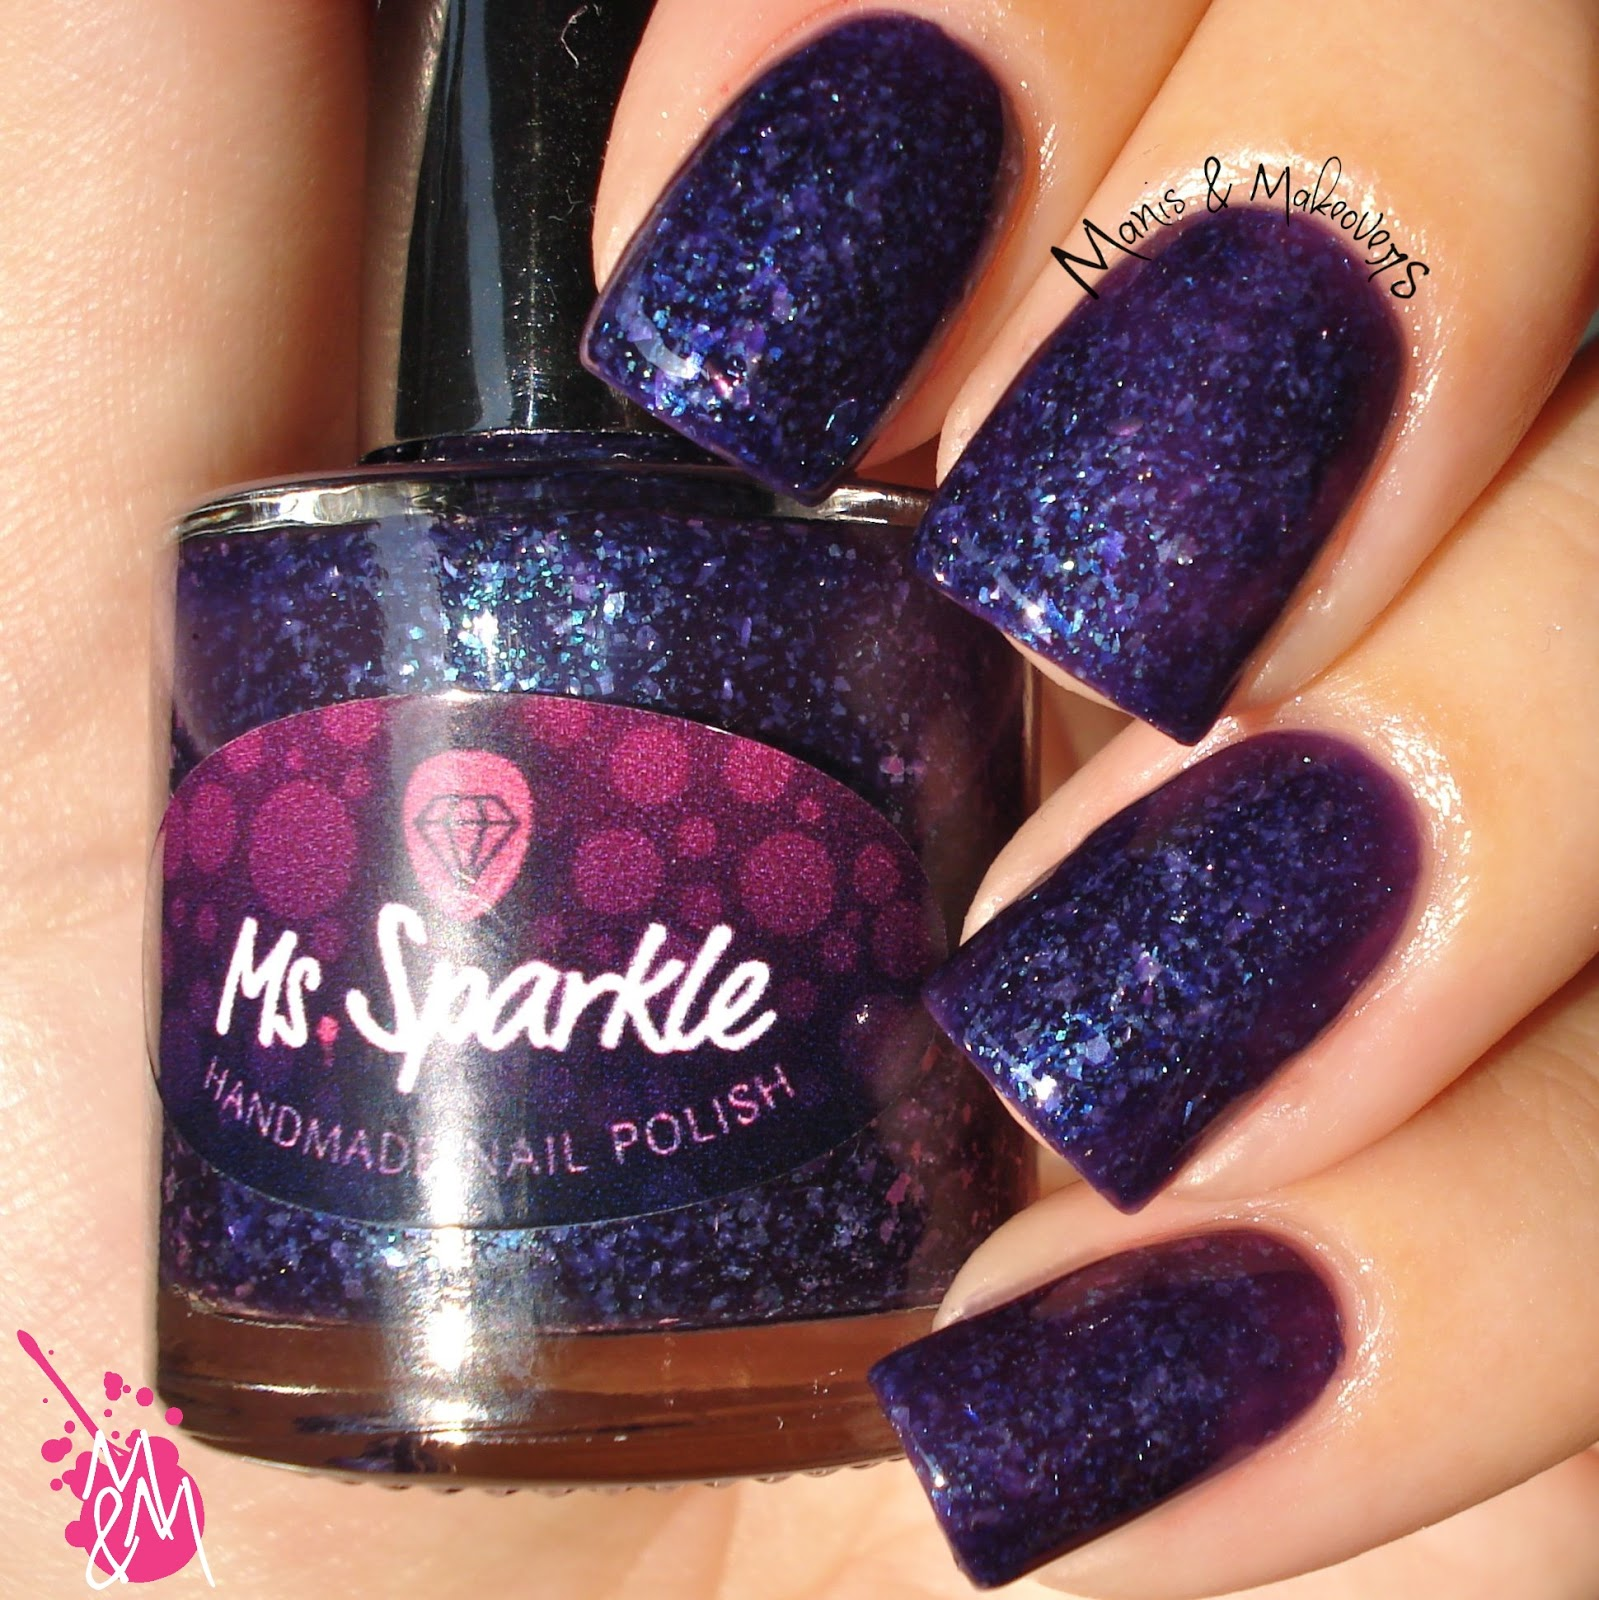 Manis Amp Makeovers Ms Sparkle Sheer OMagic Collection